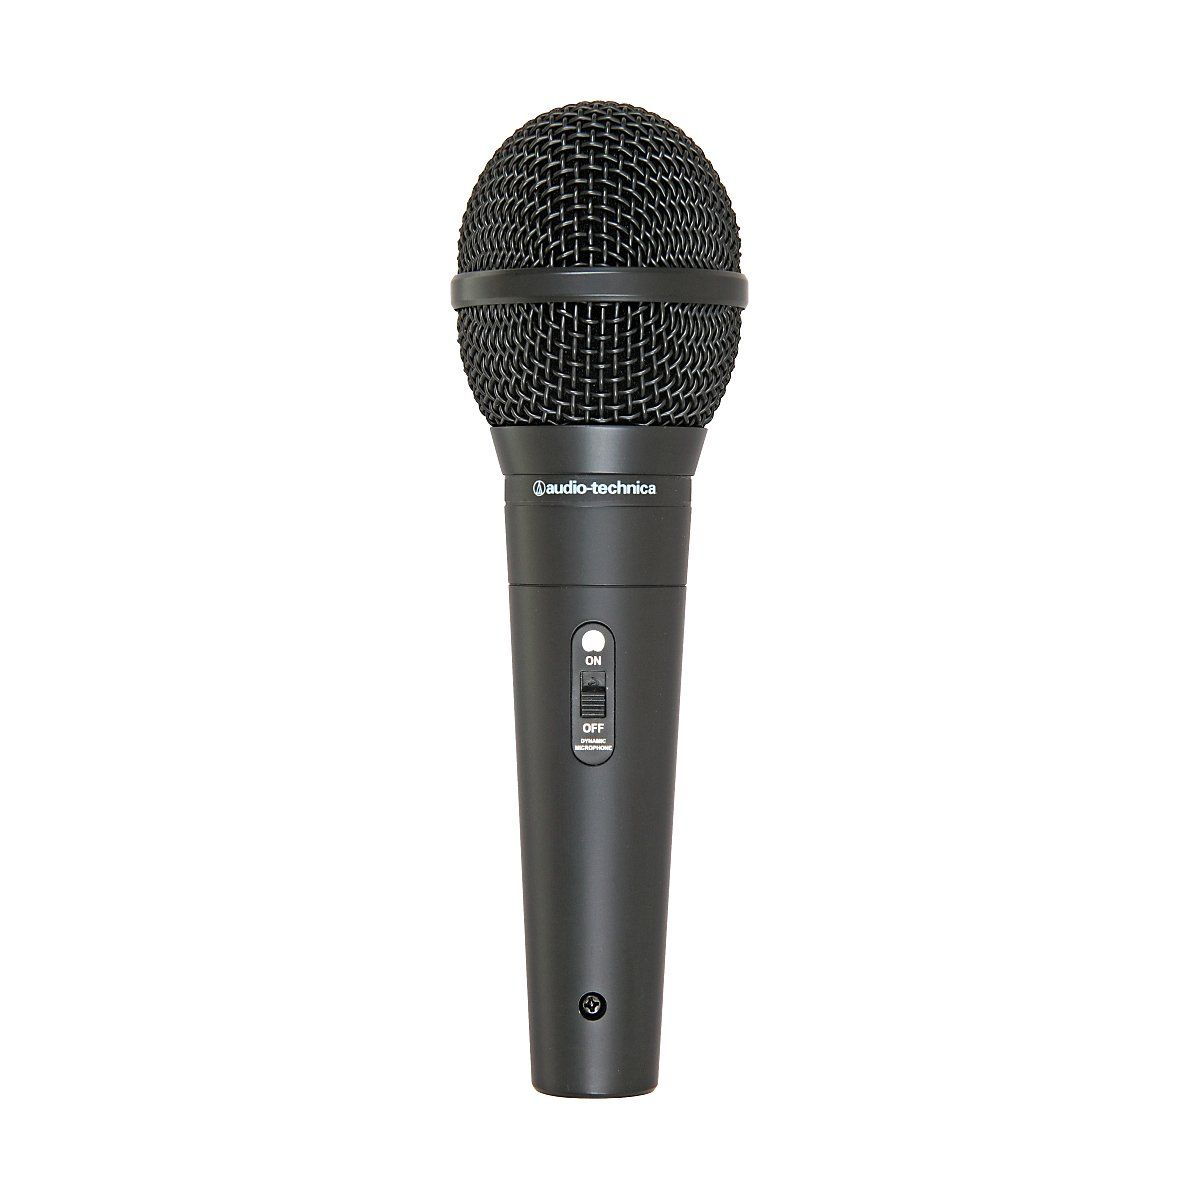 Audio Technica M4000s Handheld Dynamic Microphone Audio Technica Microphone Audio